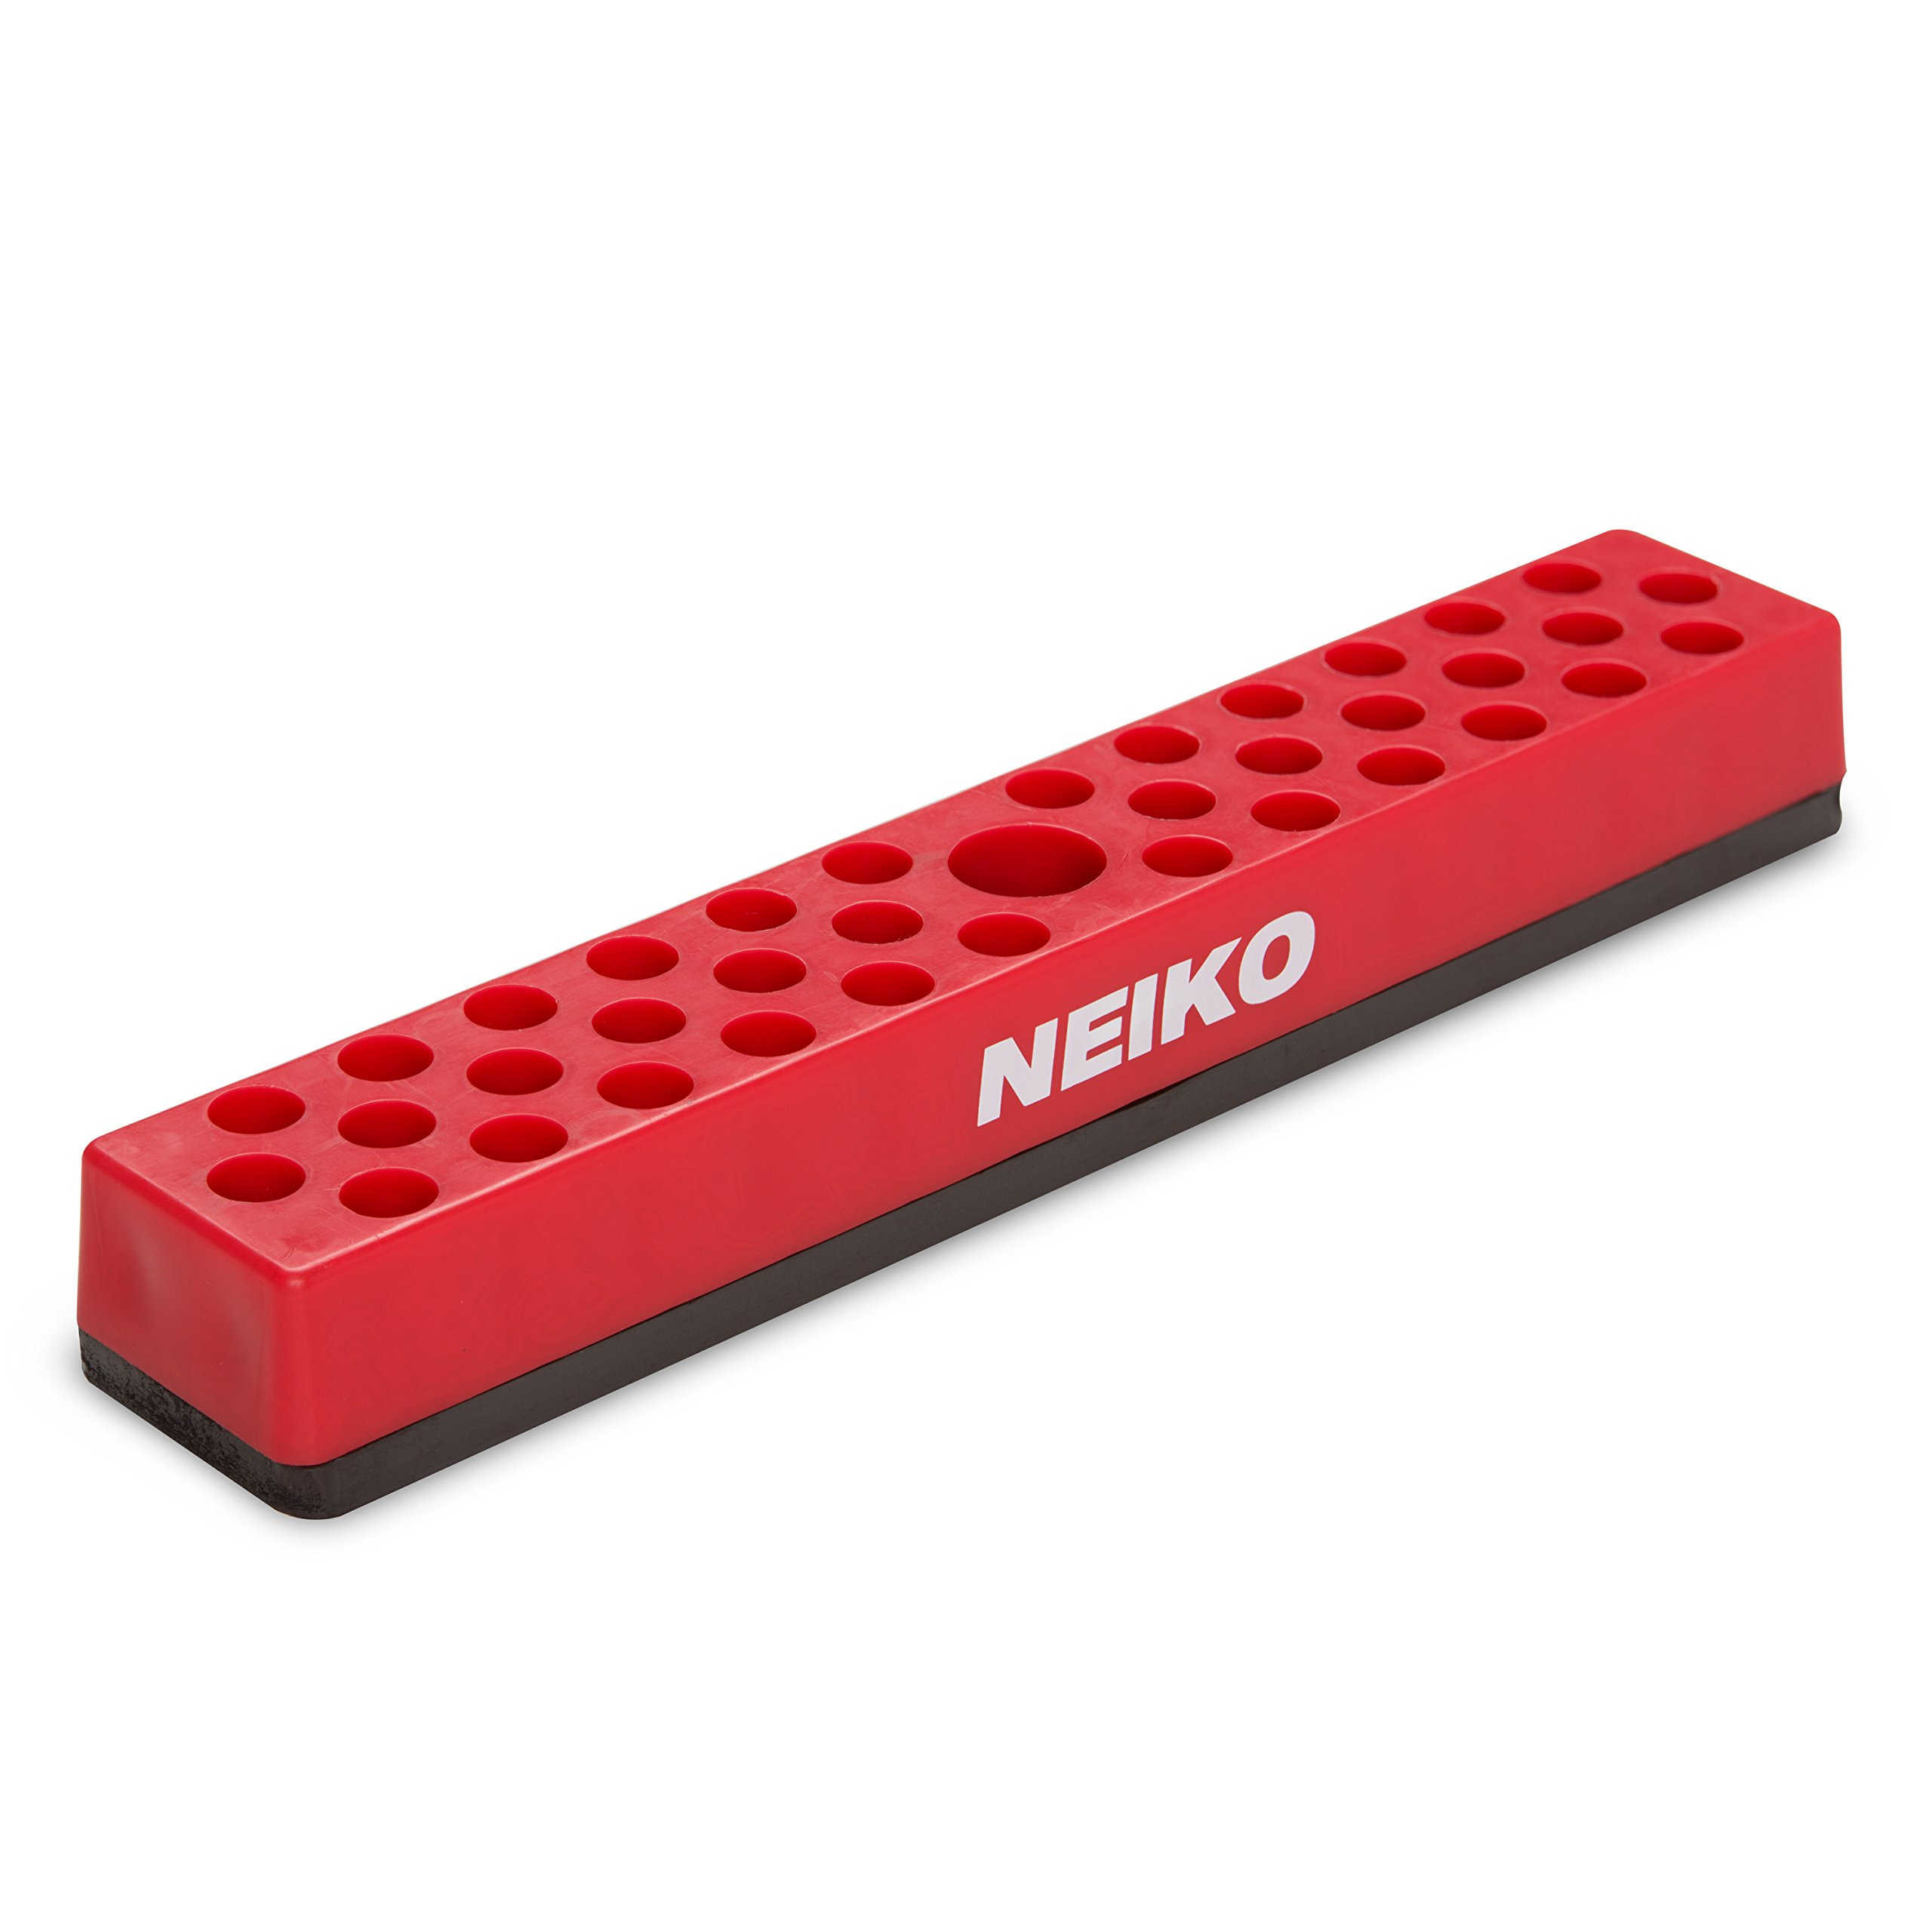 Neiko 02449A Hex Bit Organizer Rack with Strong Magnetic Base, 37-Hole Storage | ¼-Inch Hex Bit and Drive Bit Adapter